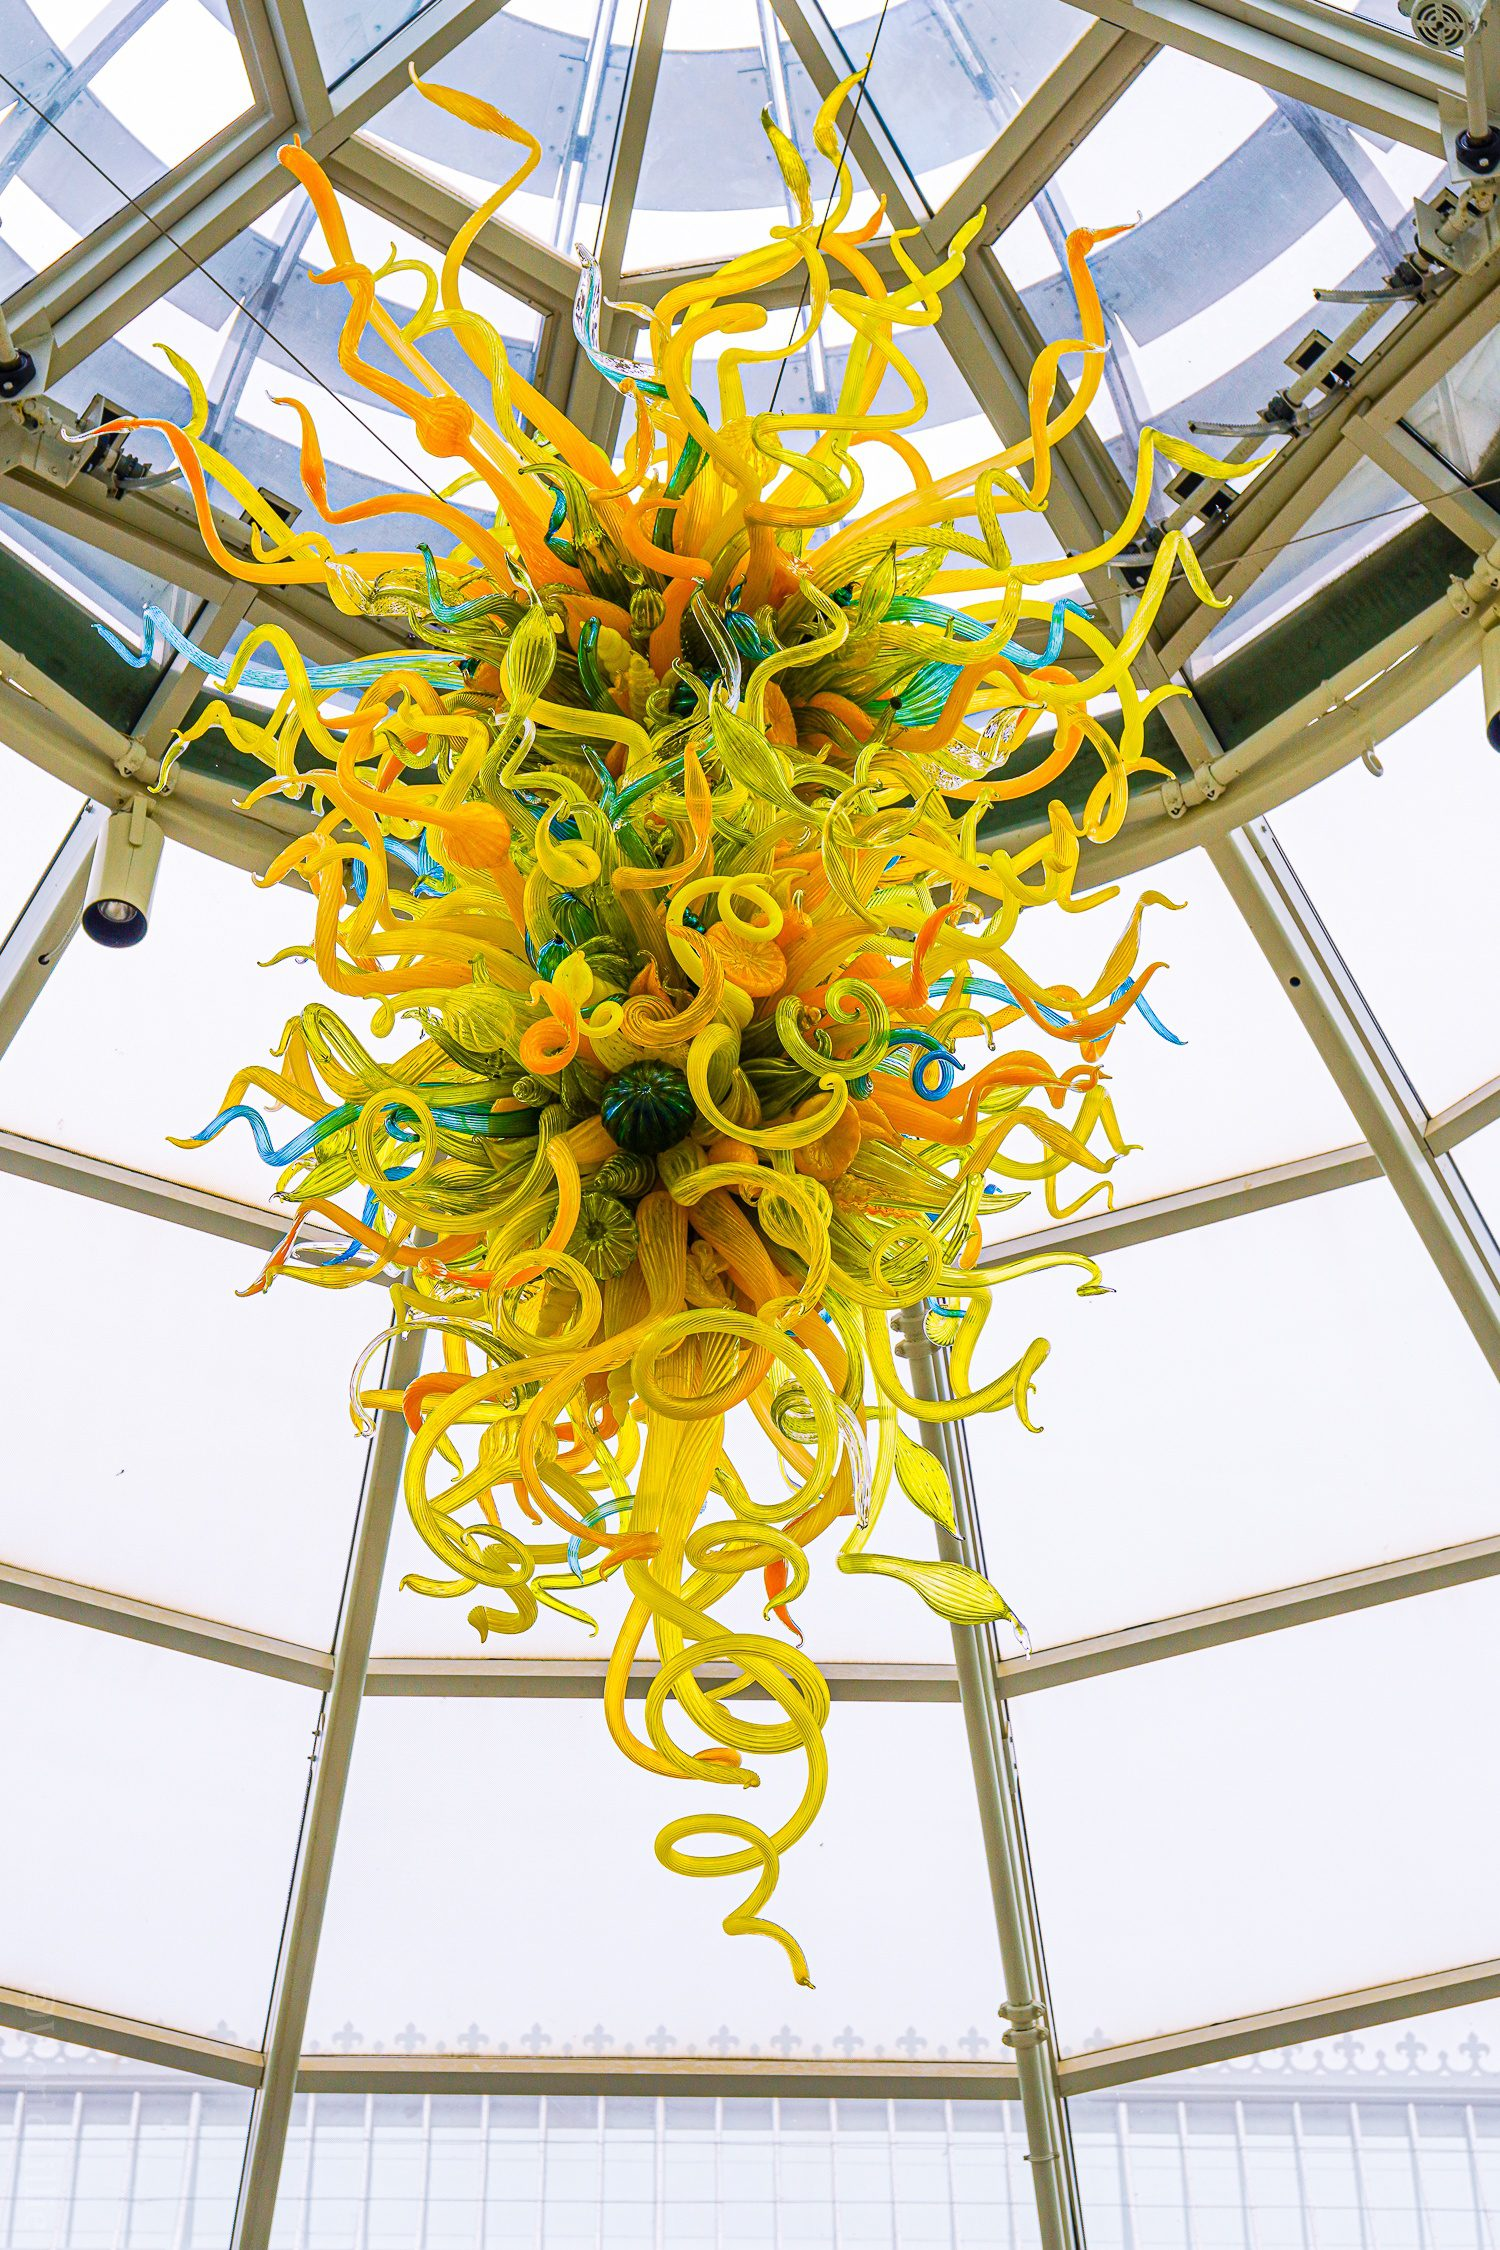 A Chihuly glass chandelier in the atrium.